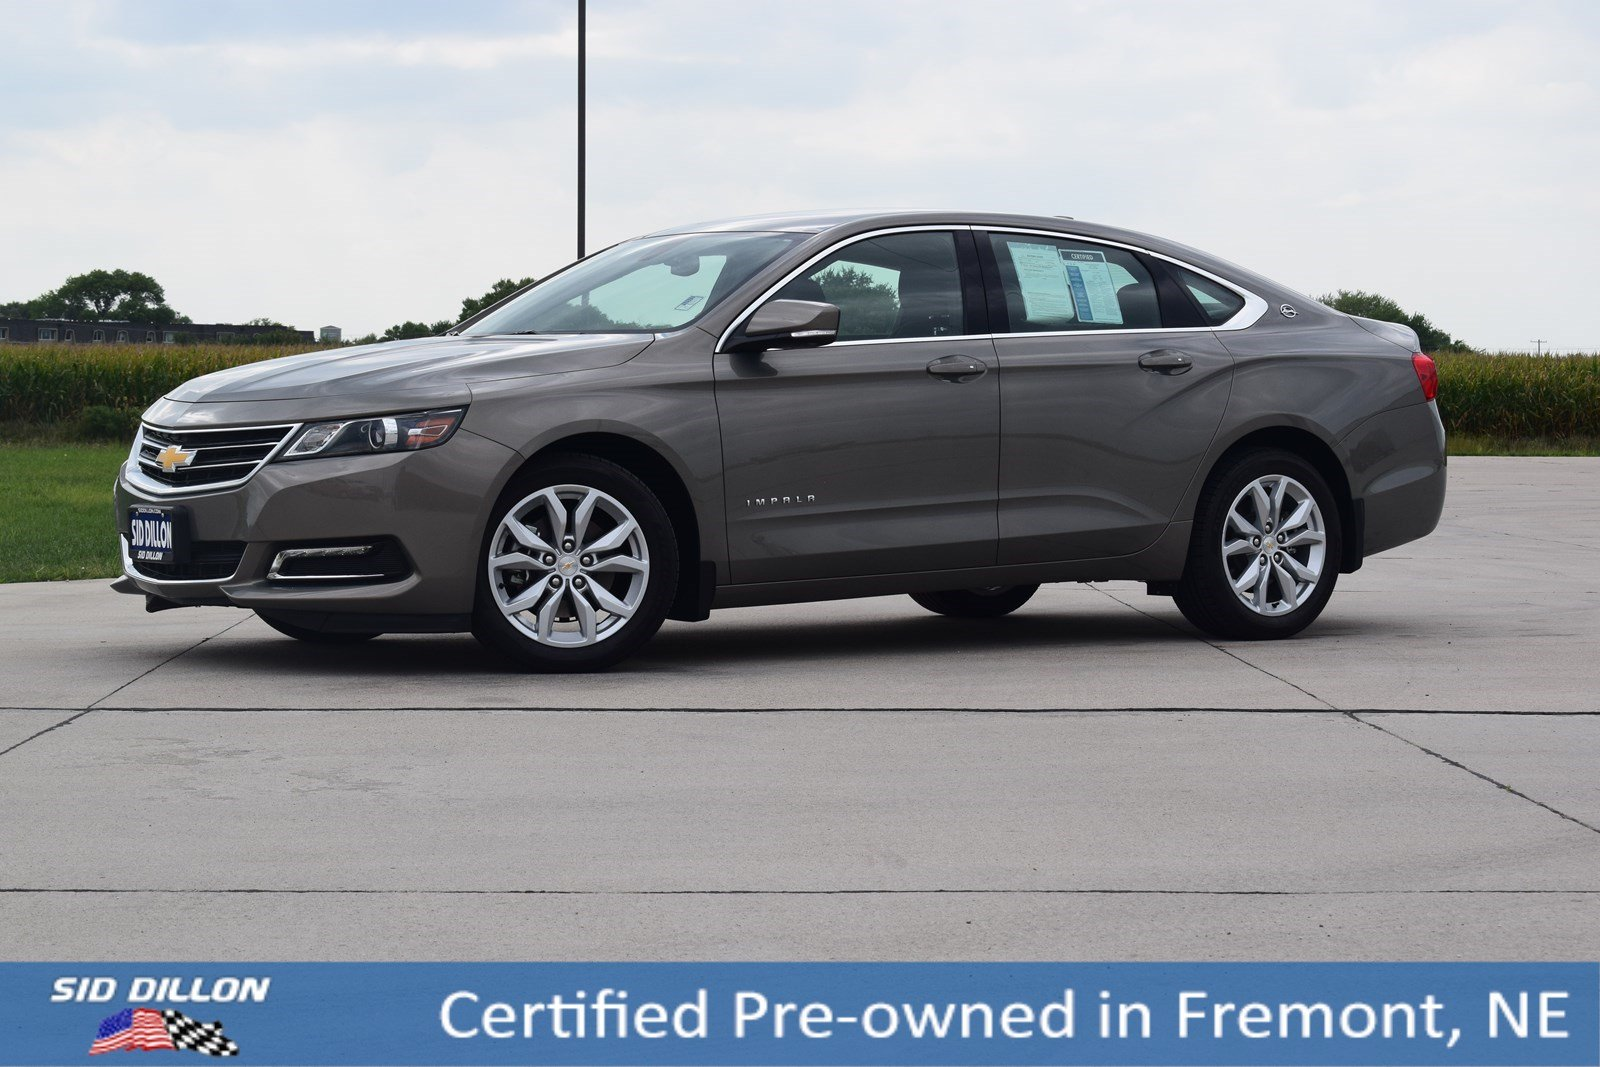 Certified Pre-Owned 2018 Chevrolet Impala LT